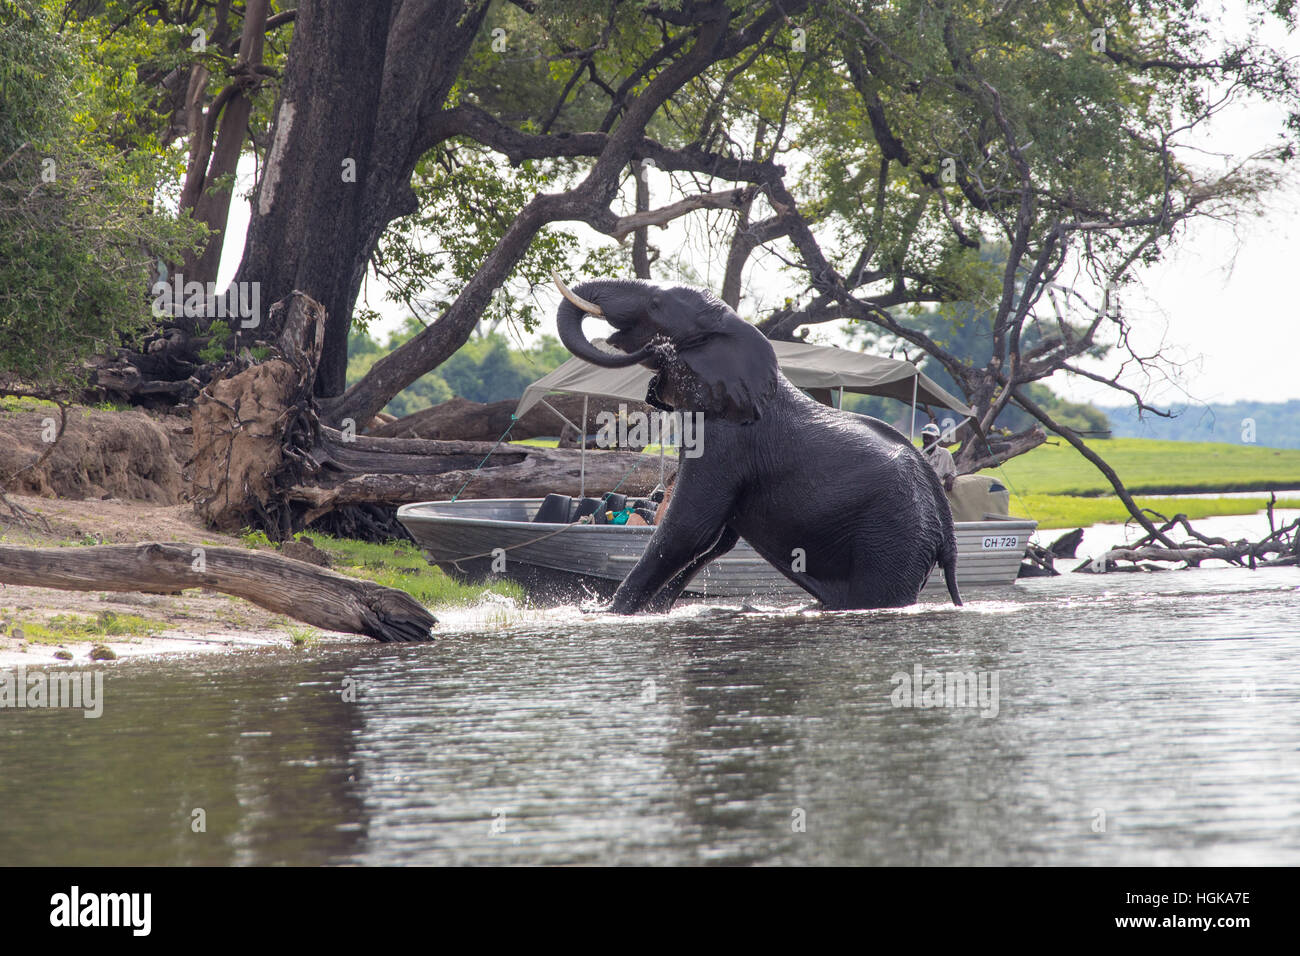 Tourists on a river safari in Chobe National Park, Botswana, Africa - Stock Image